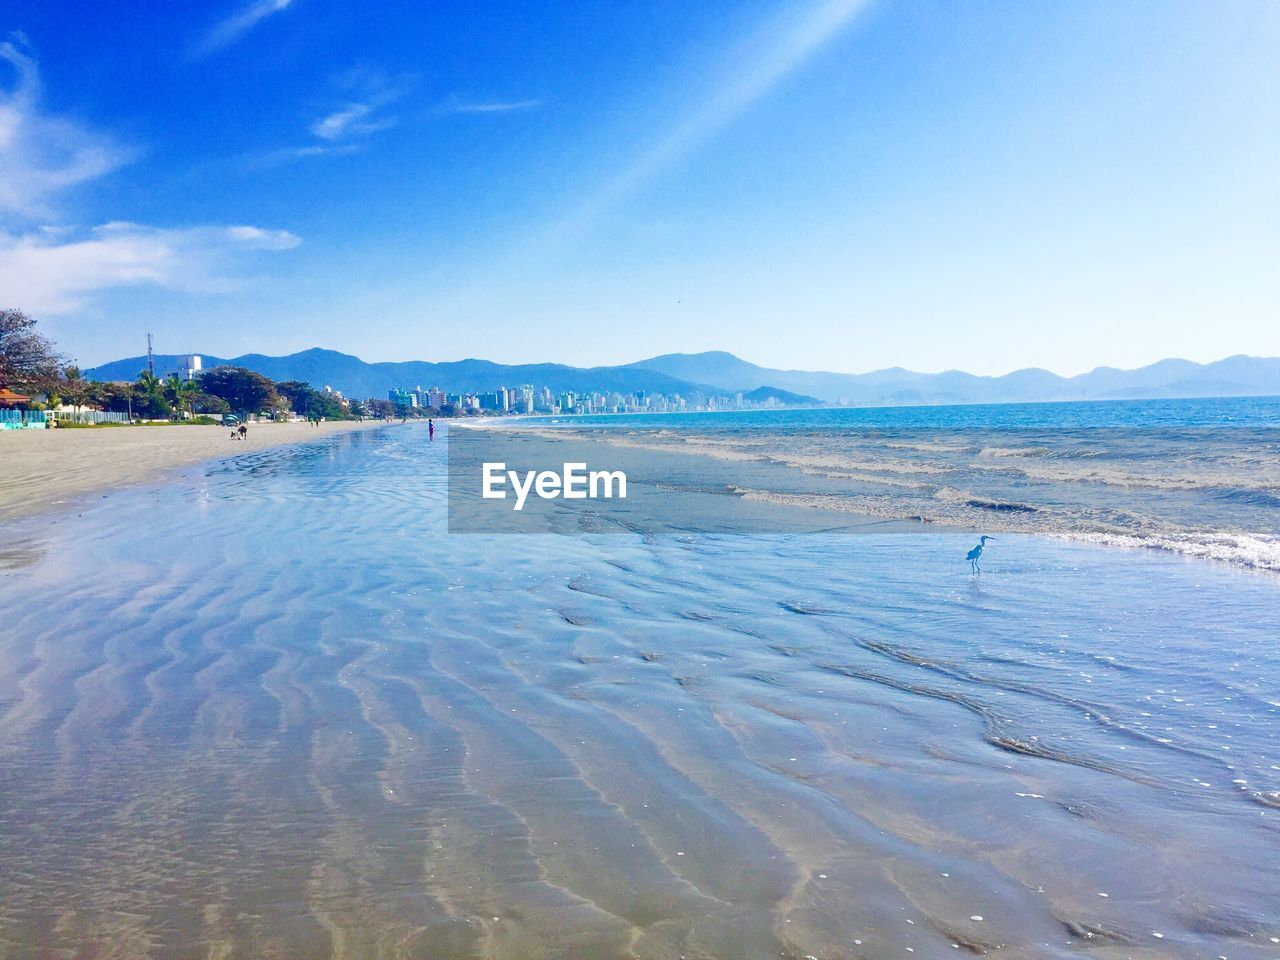 sea, beach, water, scenics, beauty in nature, nature, sky, tranquil scene, tranquility, blue, sand, outdoors, day, vacations, summer, travel destinations, landscape, mountain, no people, wave